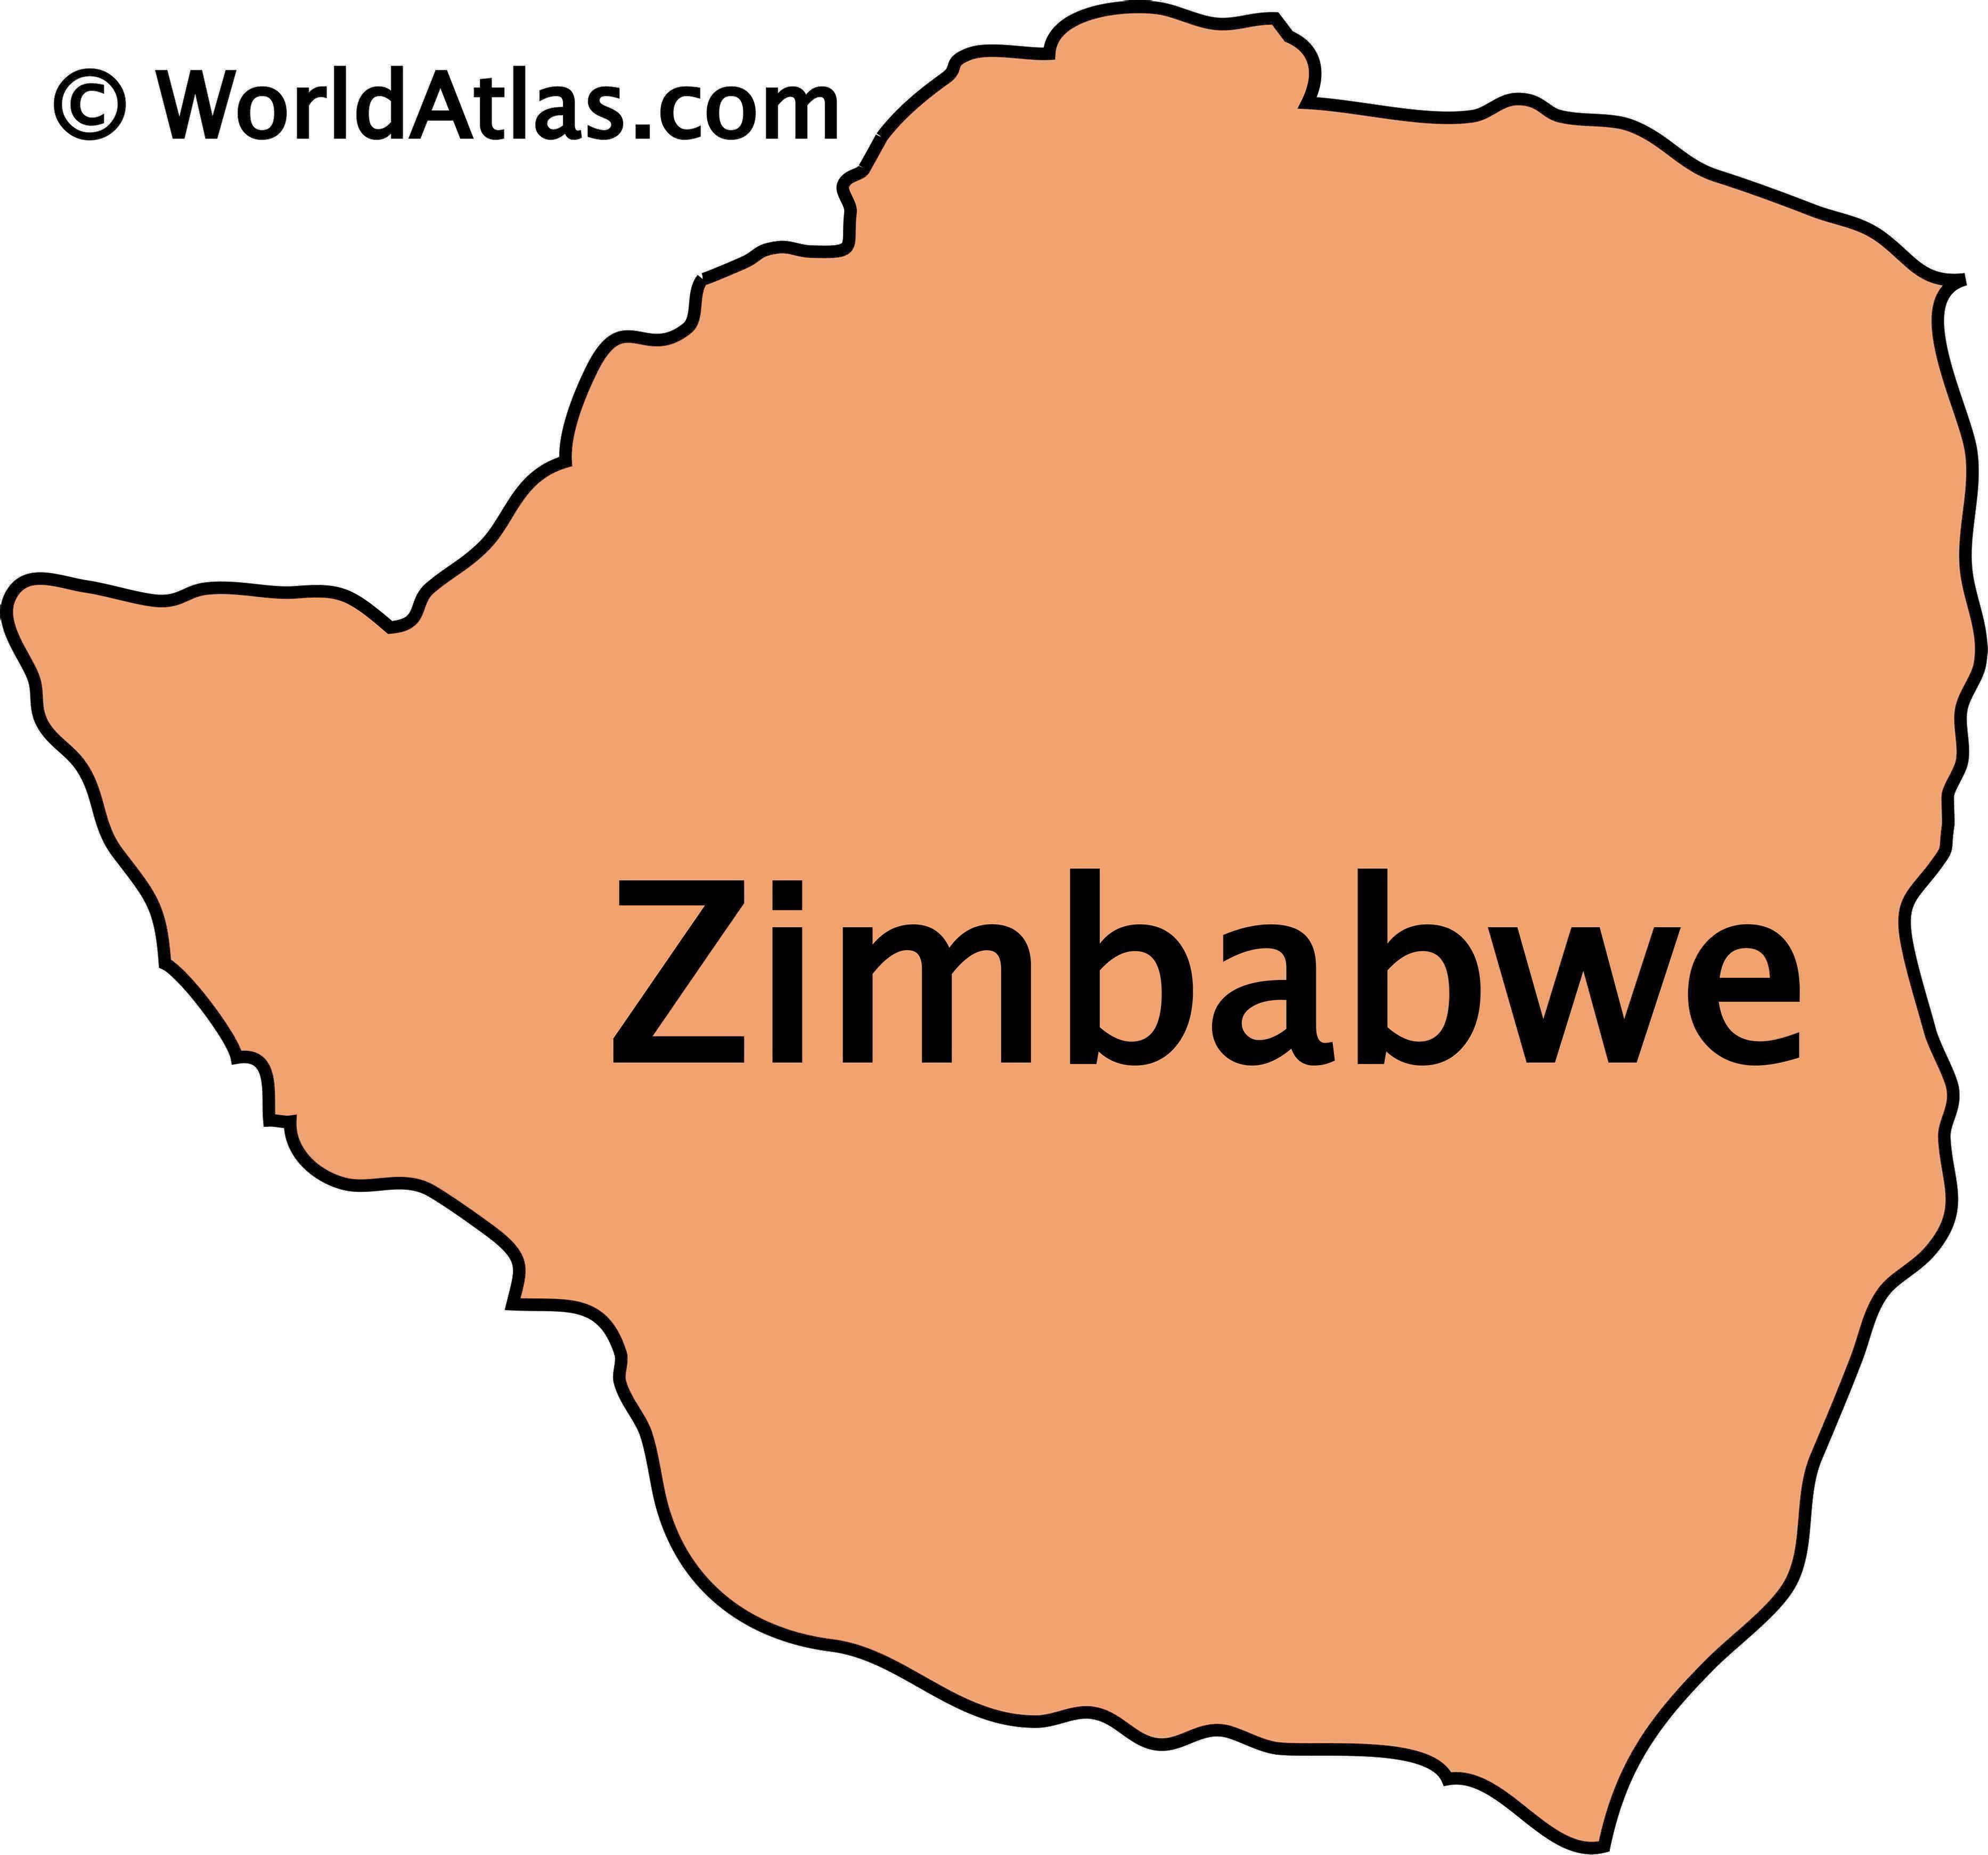 Outline map of Zimbabwe